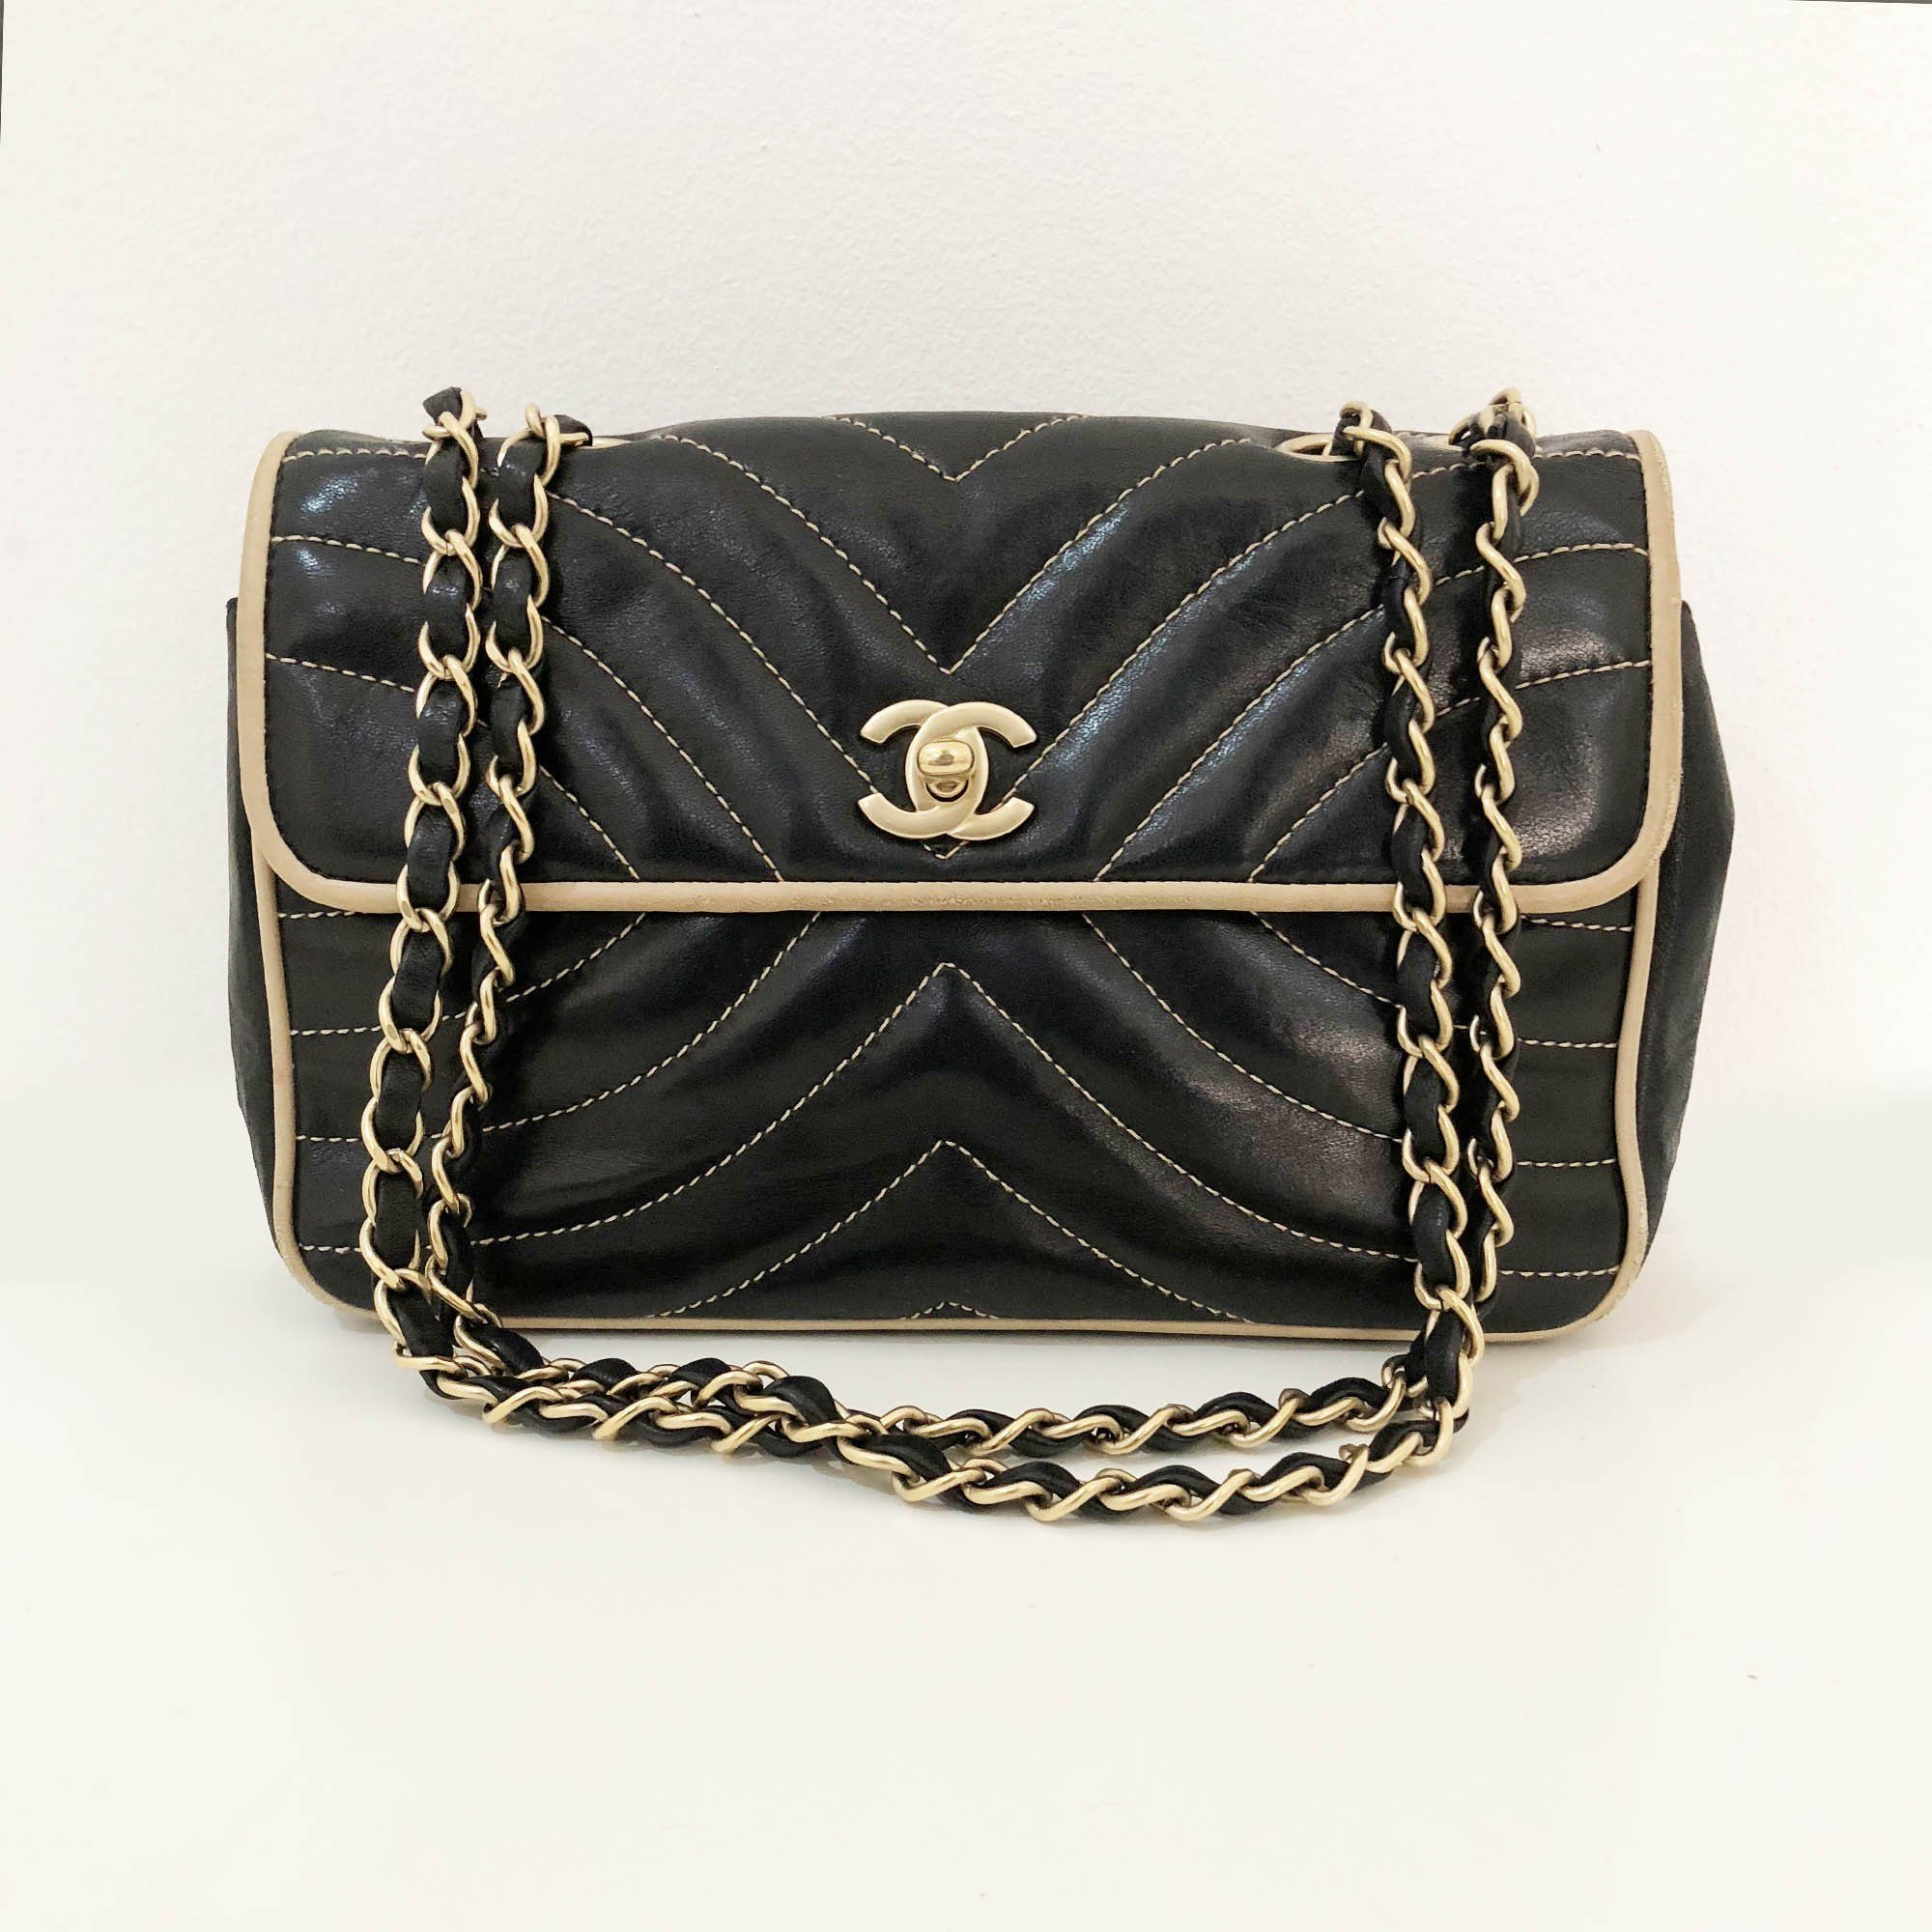 Chanel Stitched Lambskin Black Flap Bag